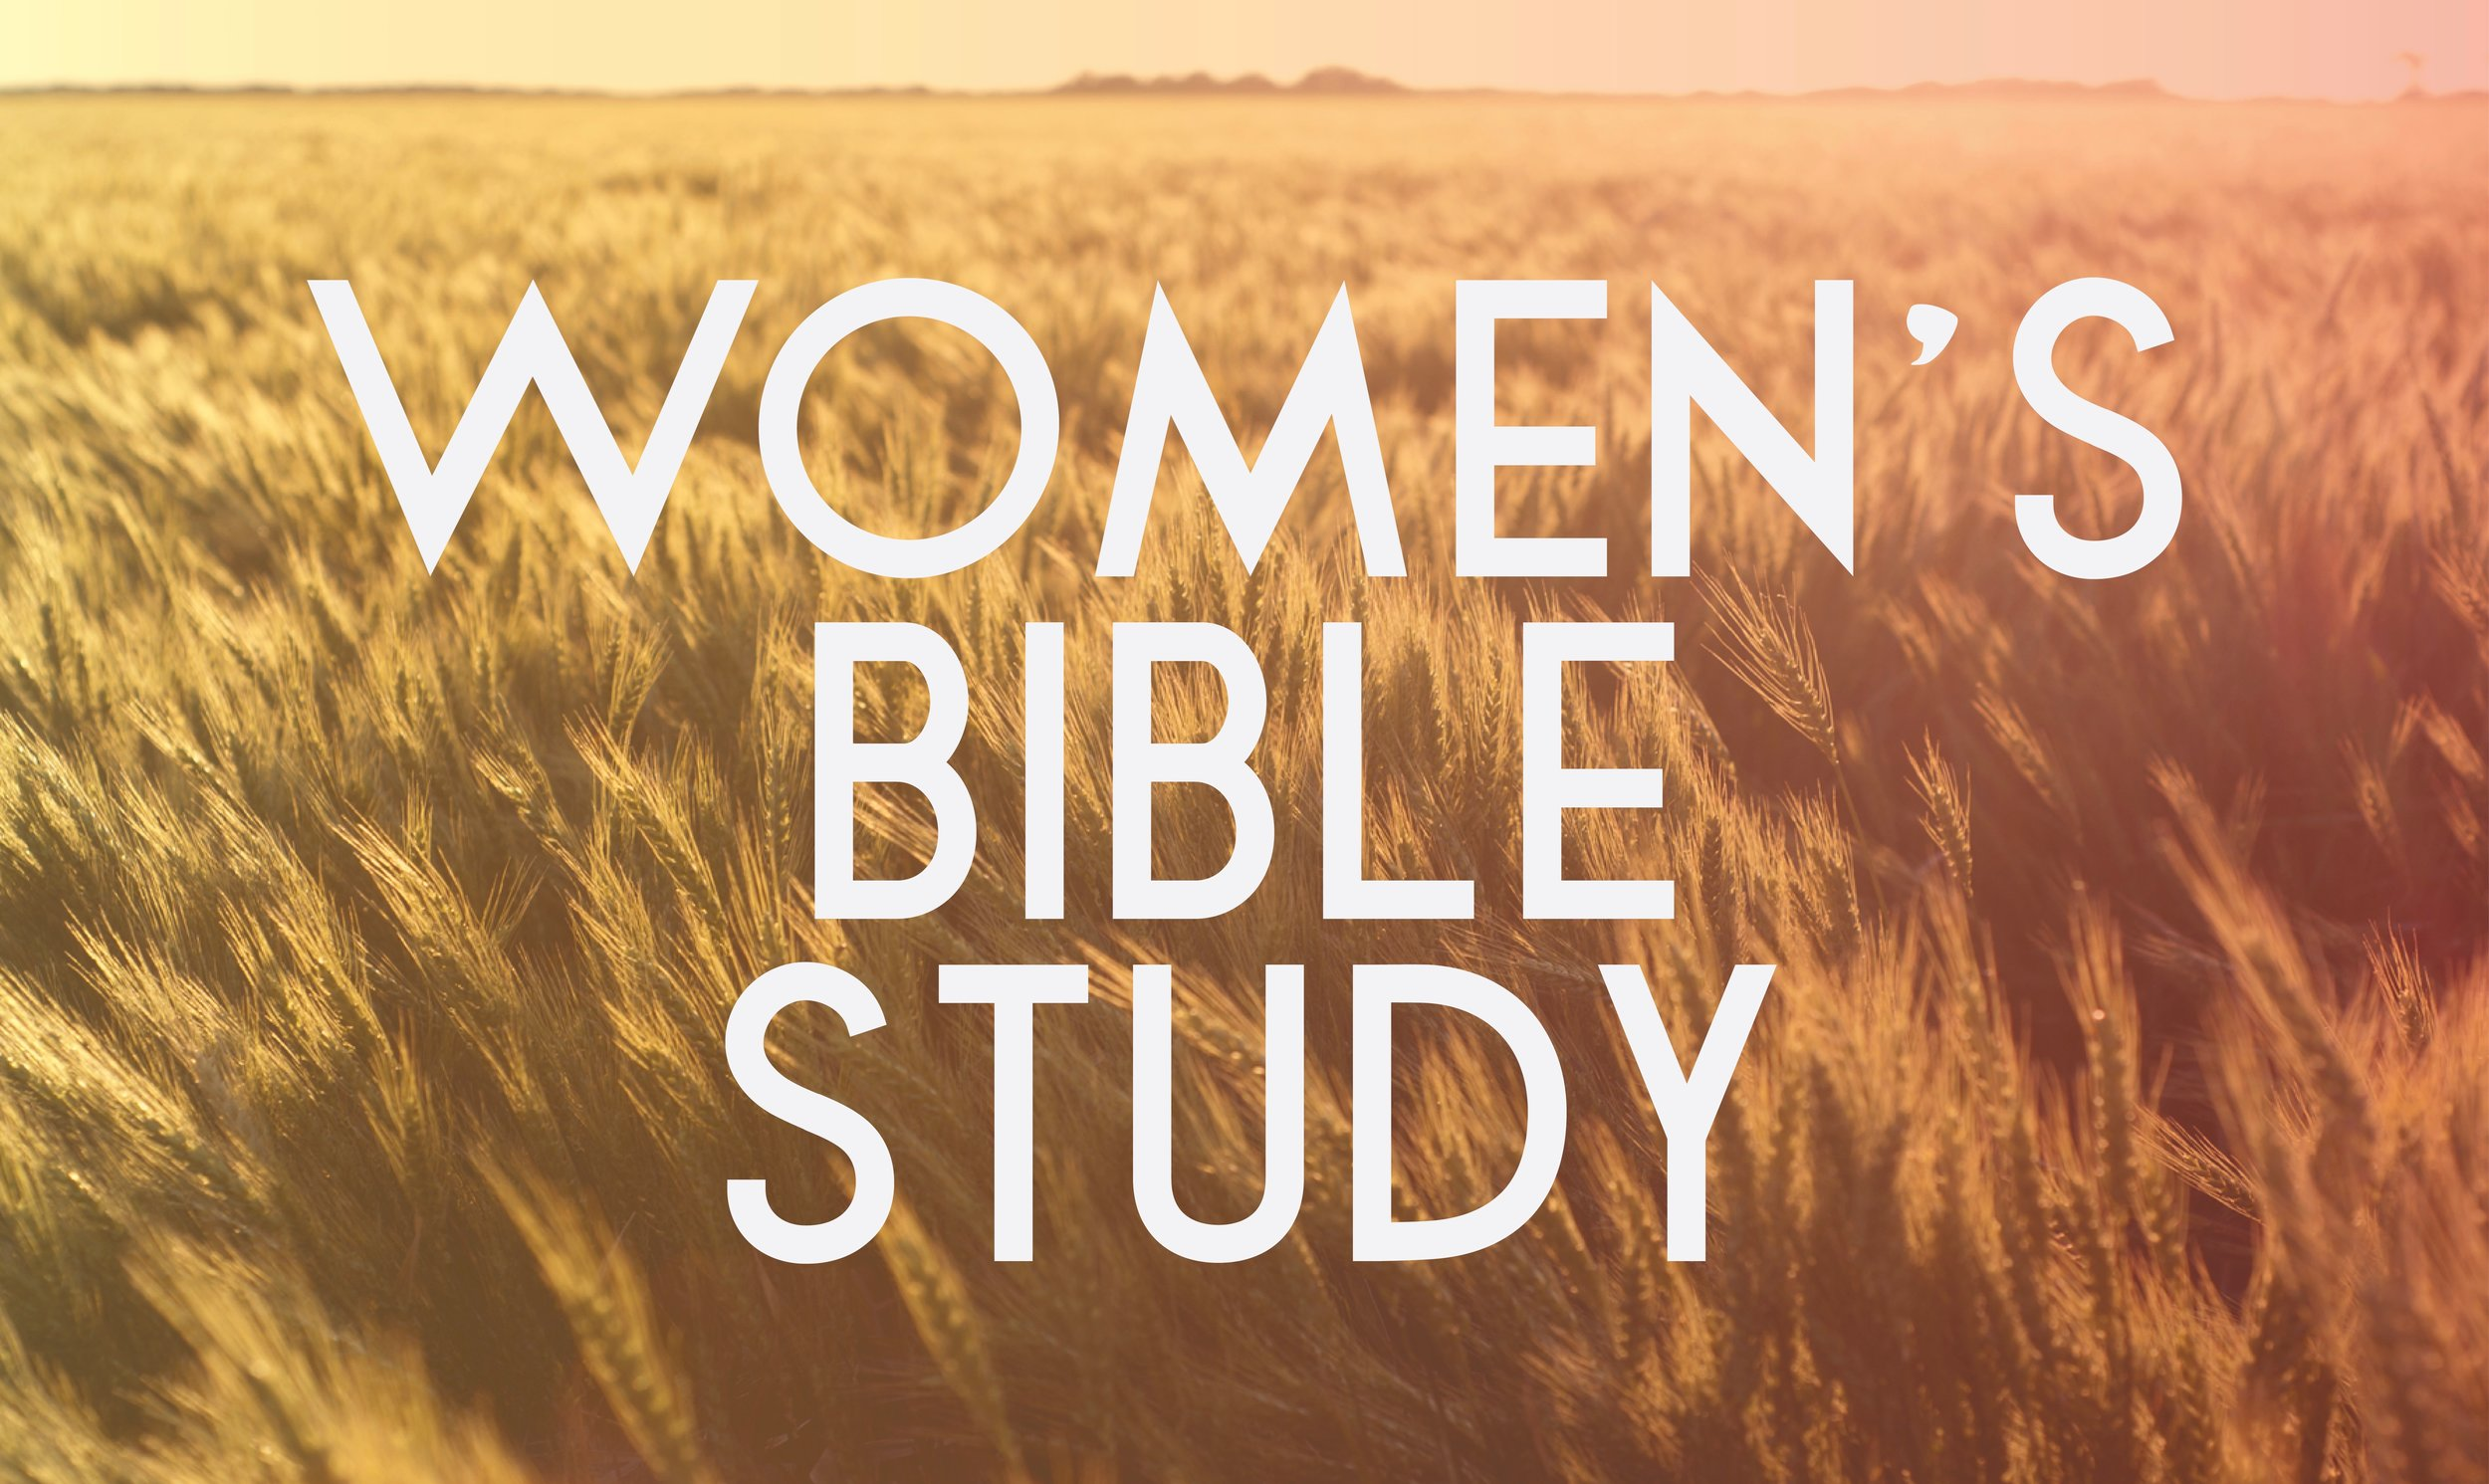 Women's Bible Study   Join us every other Tuesday this Fall for Women's Bible Study at Arcadia City Church. There are meeting times available:    9:15-11:00am @ Arcadia City Church (Childcare Available)    6:30-8:30pm @ the home of Gissel Rendon  (No Childcare Available)    TO REGISTER FOR WOMEN'S BIBLE STUDY,    CLICK HERE   !